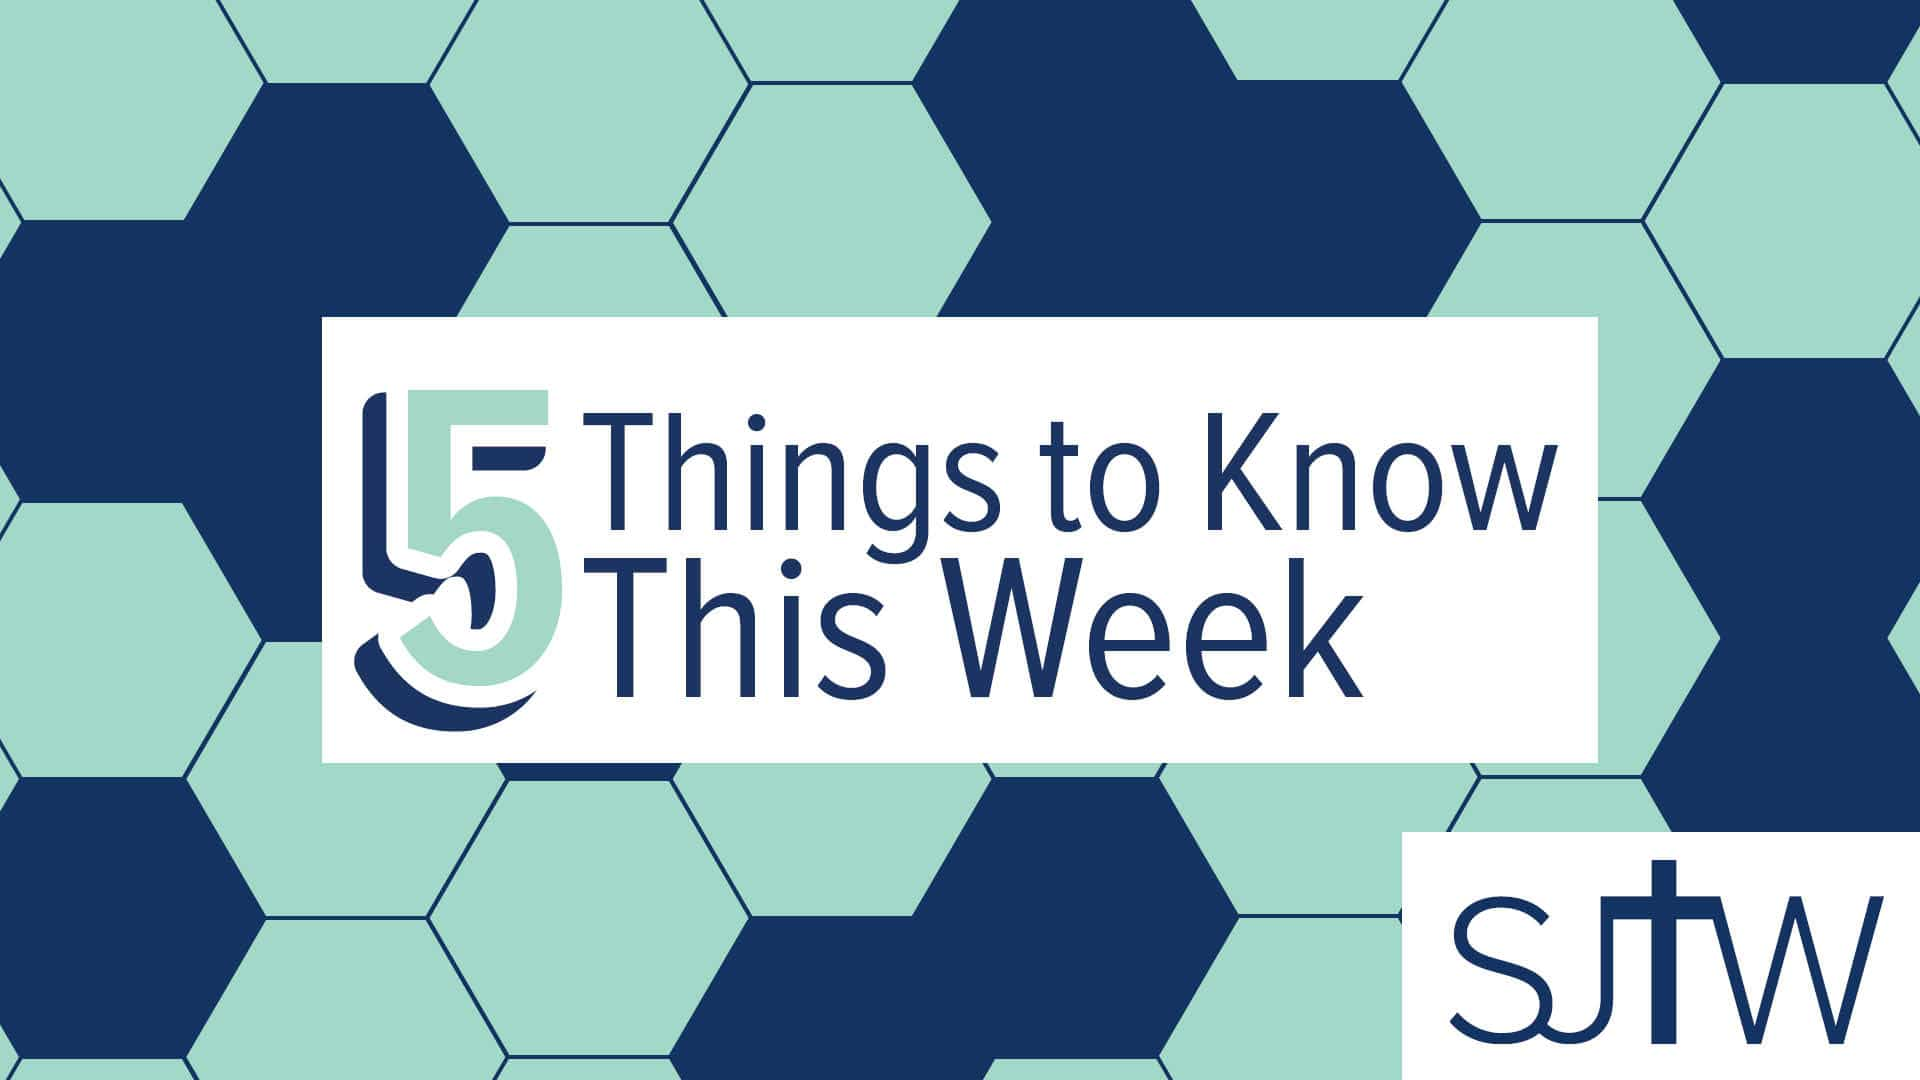 5 Things to Know This Week